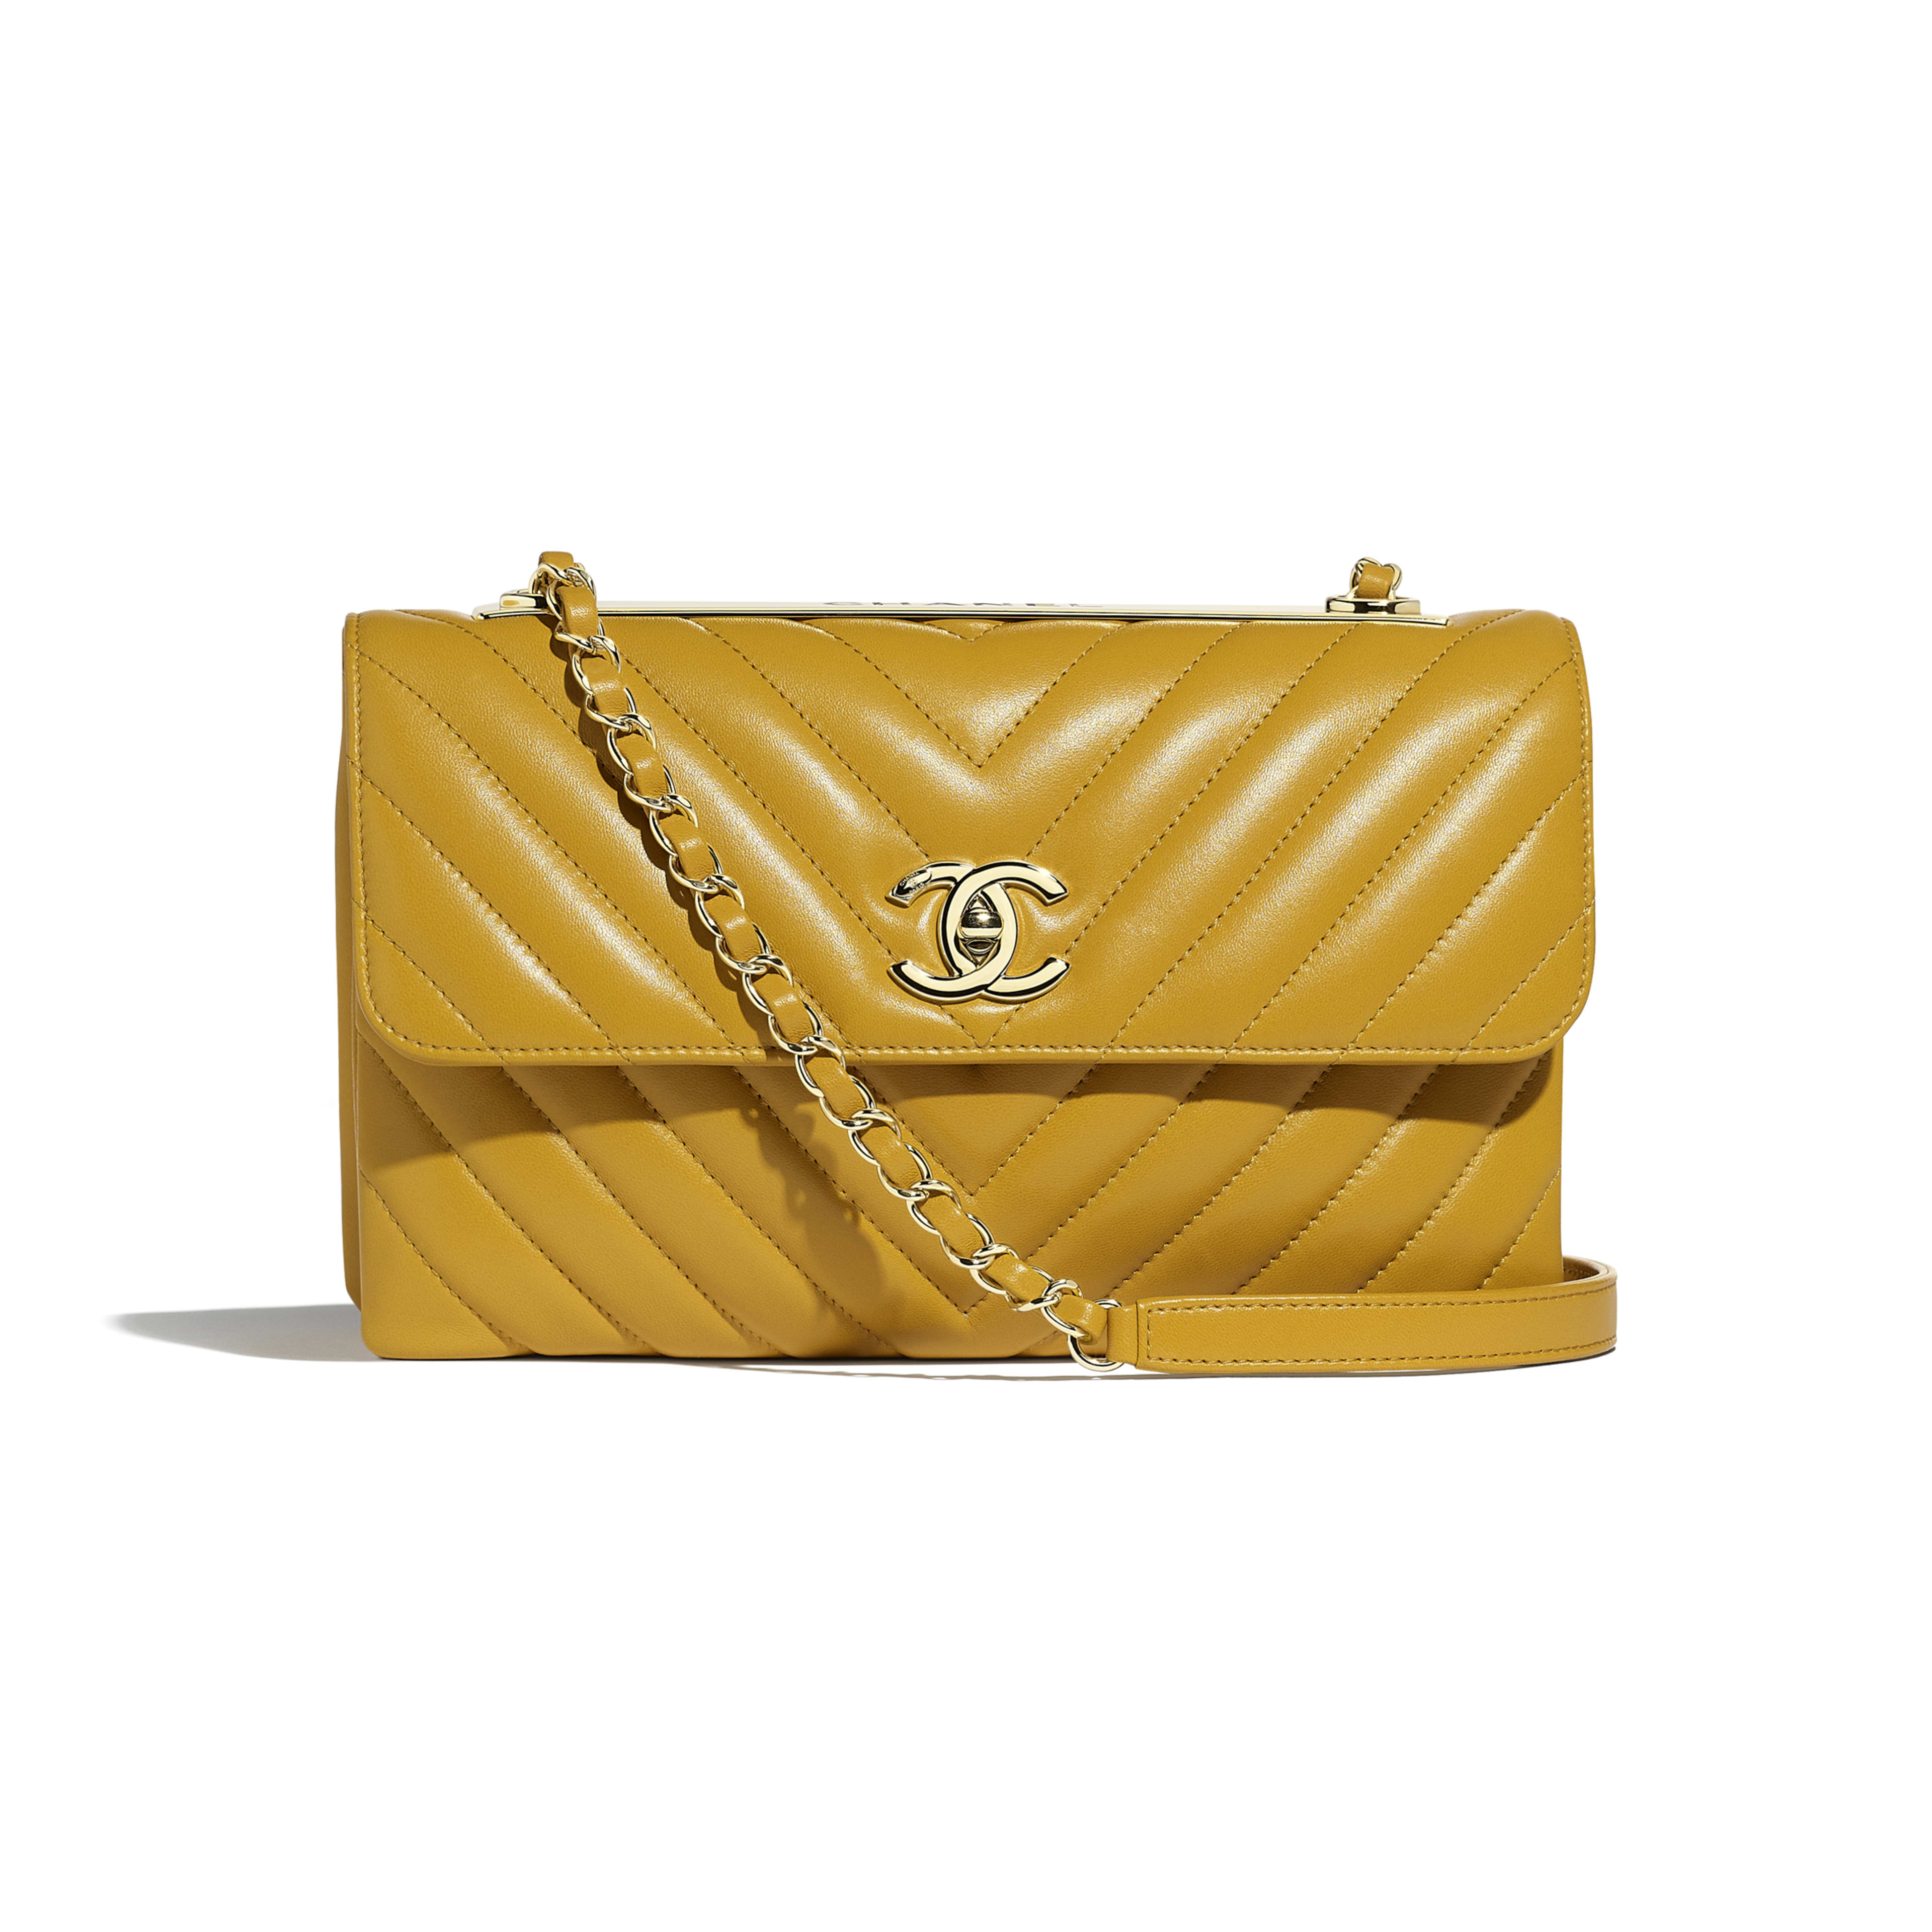 Flap Bag - Yellow - Lambskin - Default view - see full sized version